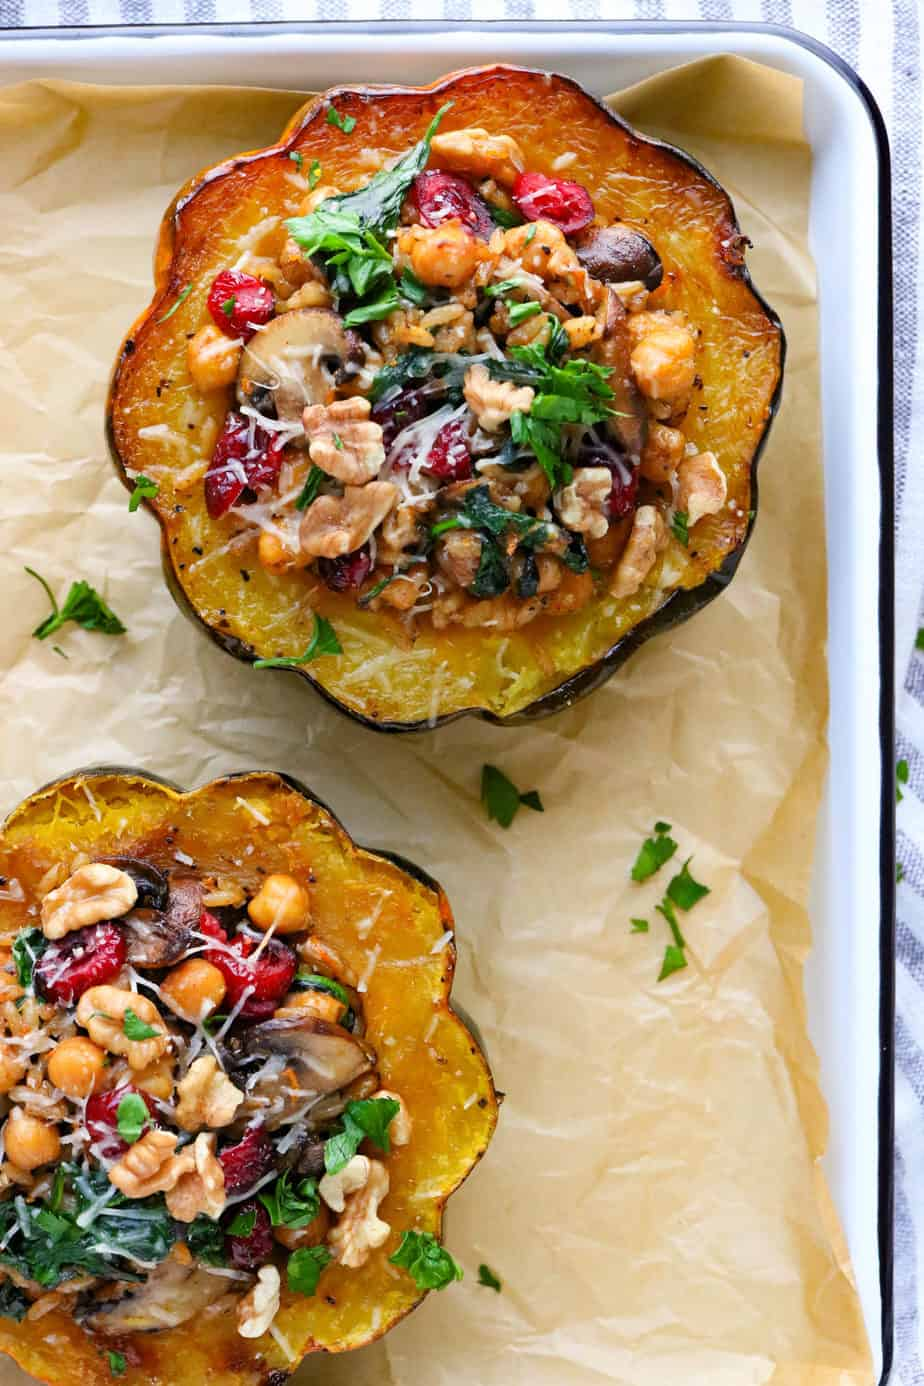 Vegetarian stuffed acorn sqaush topped with cranberries and nuts